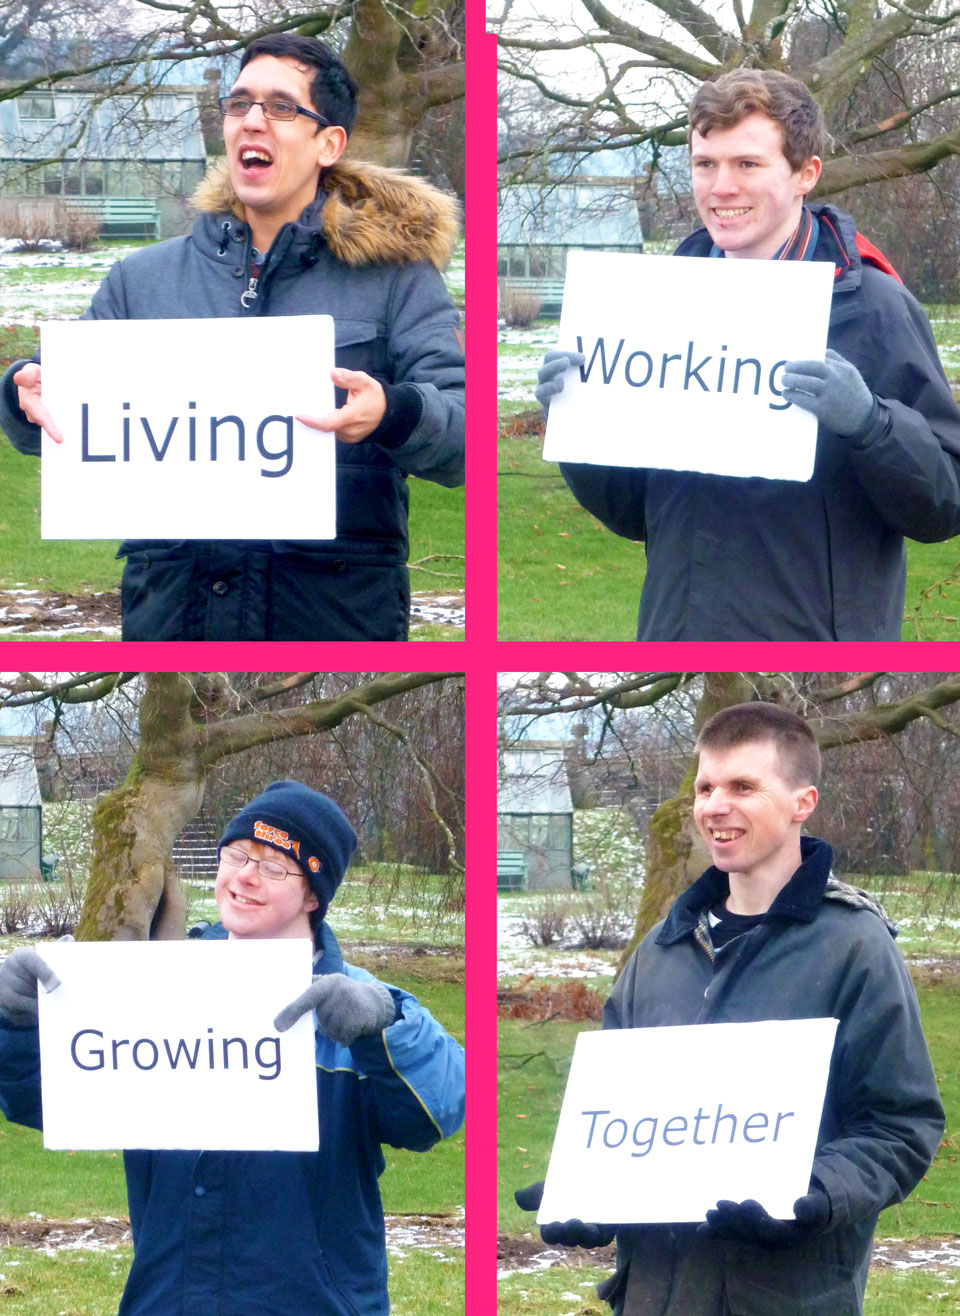 living-working-growing-together-pink